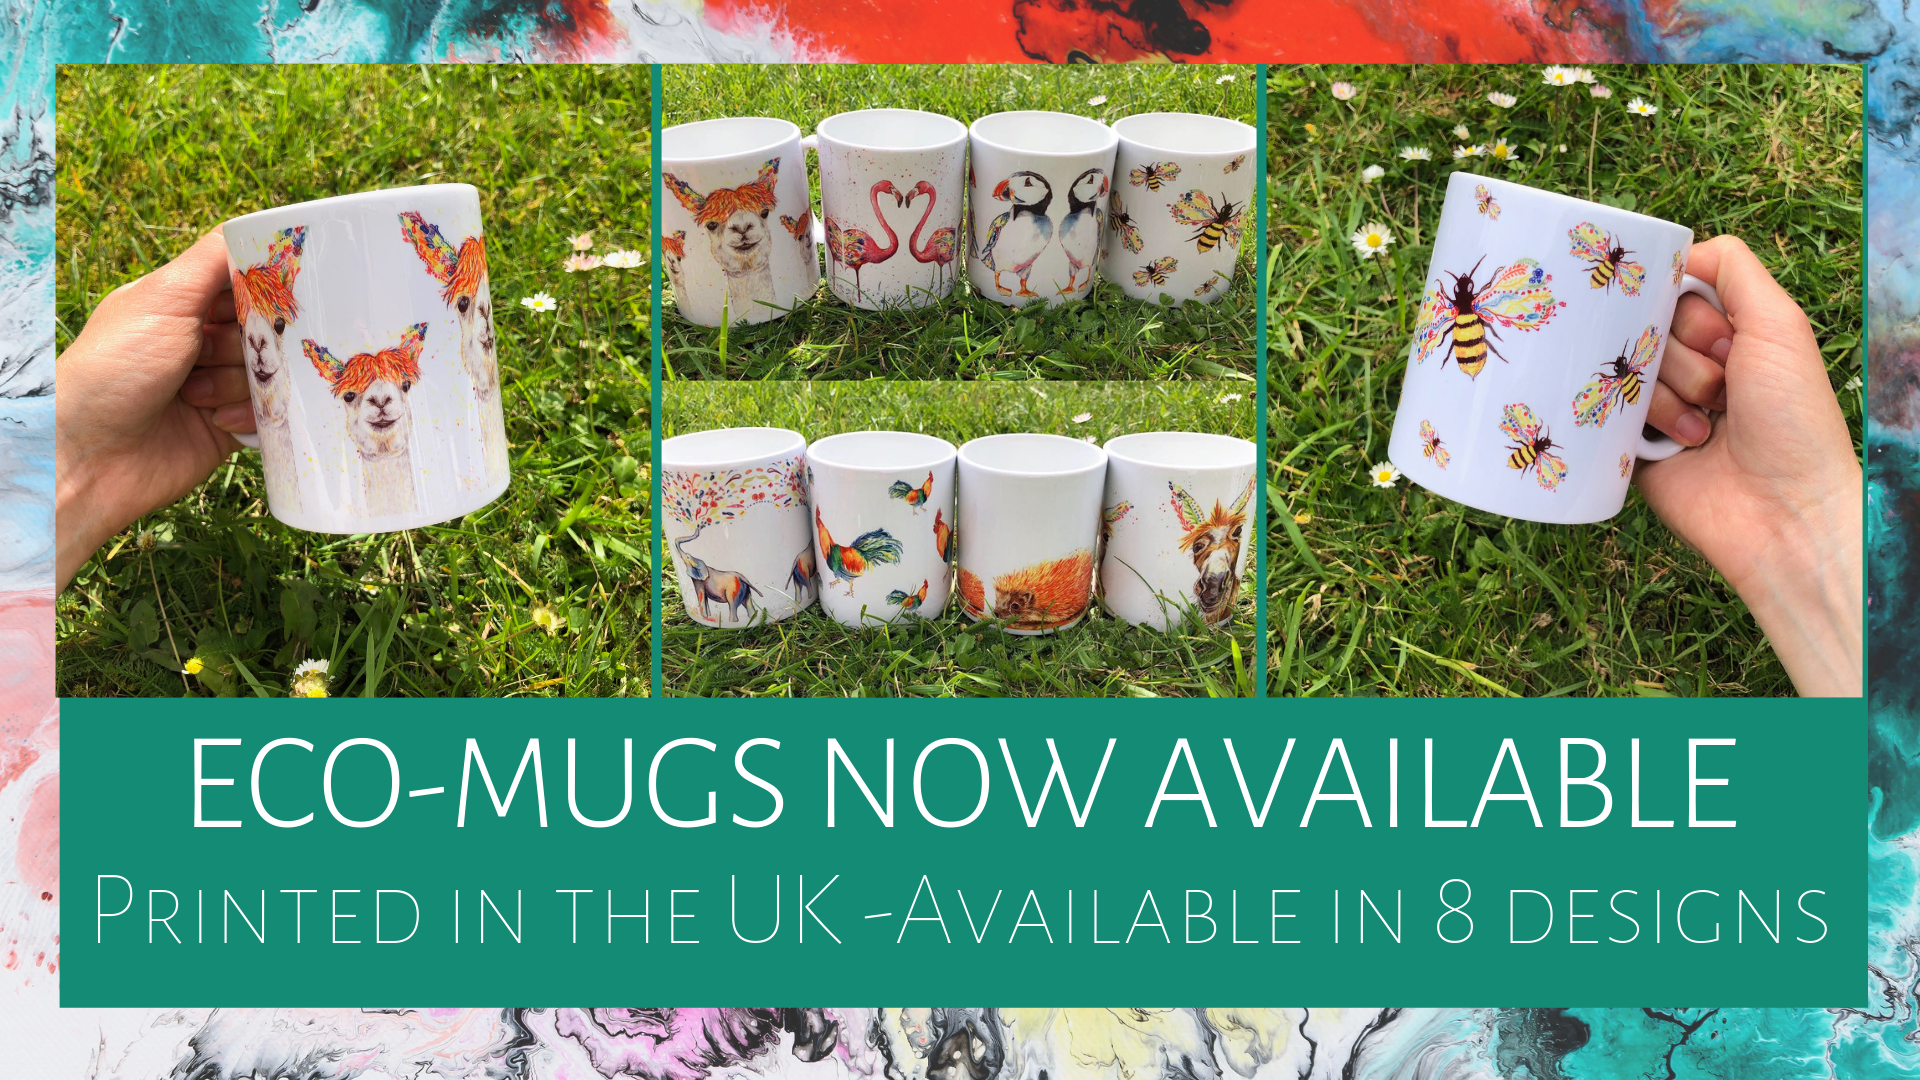 Eco mugs now available. Printed in the UK and available in 8 designs